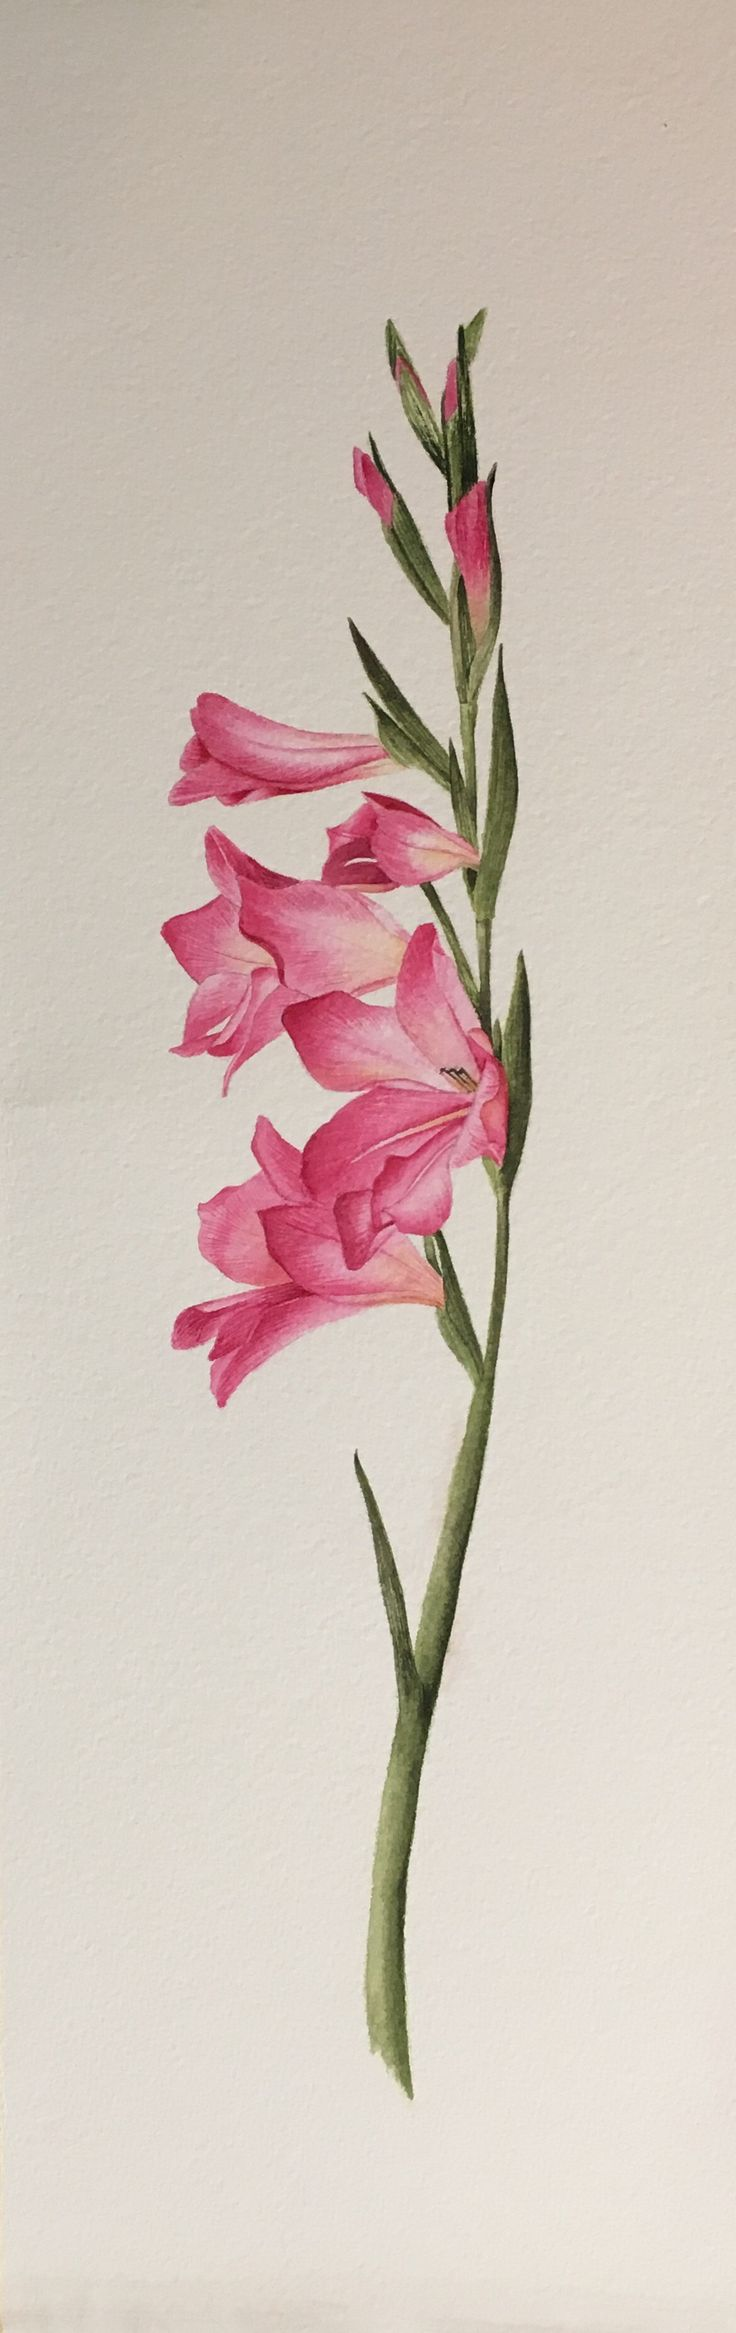 25 best ideas about gladiolus on